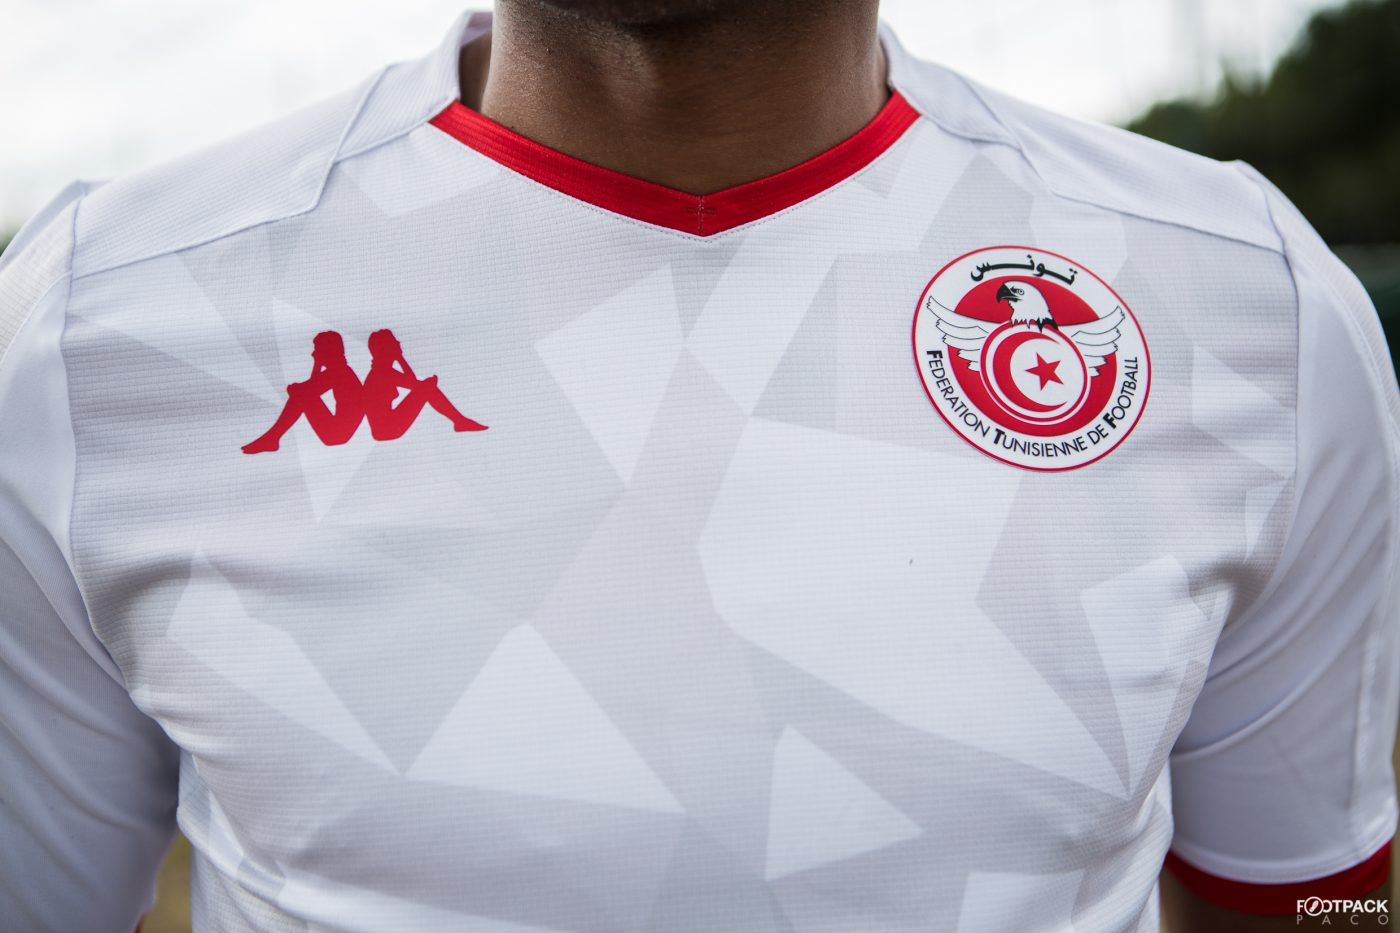 maillot-domicile-tunisie-coupe-afrique-nations-2019-kappa-footpack-8